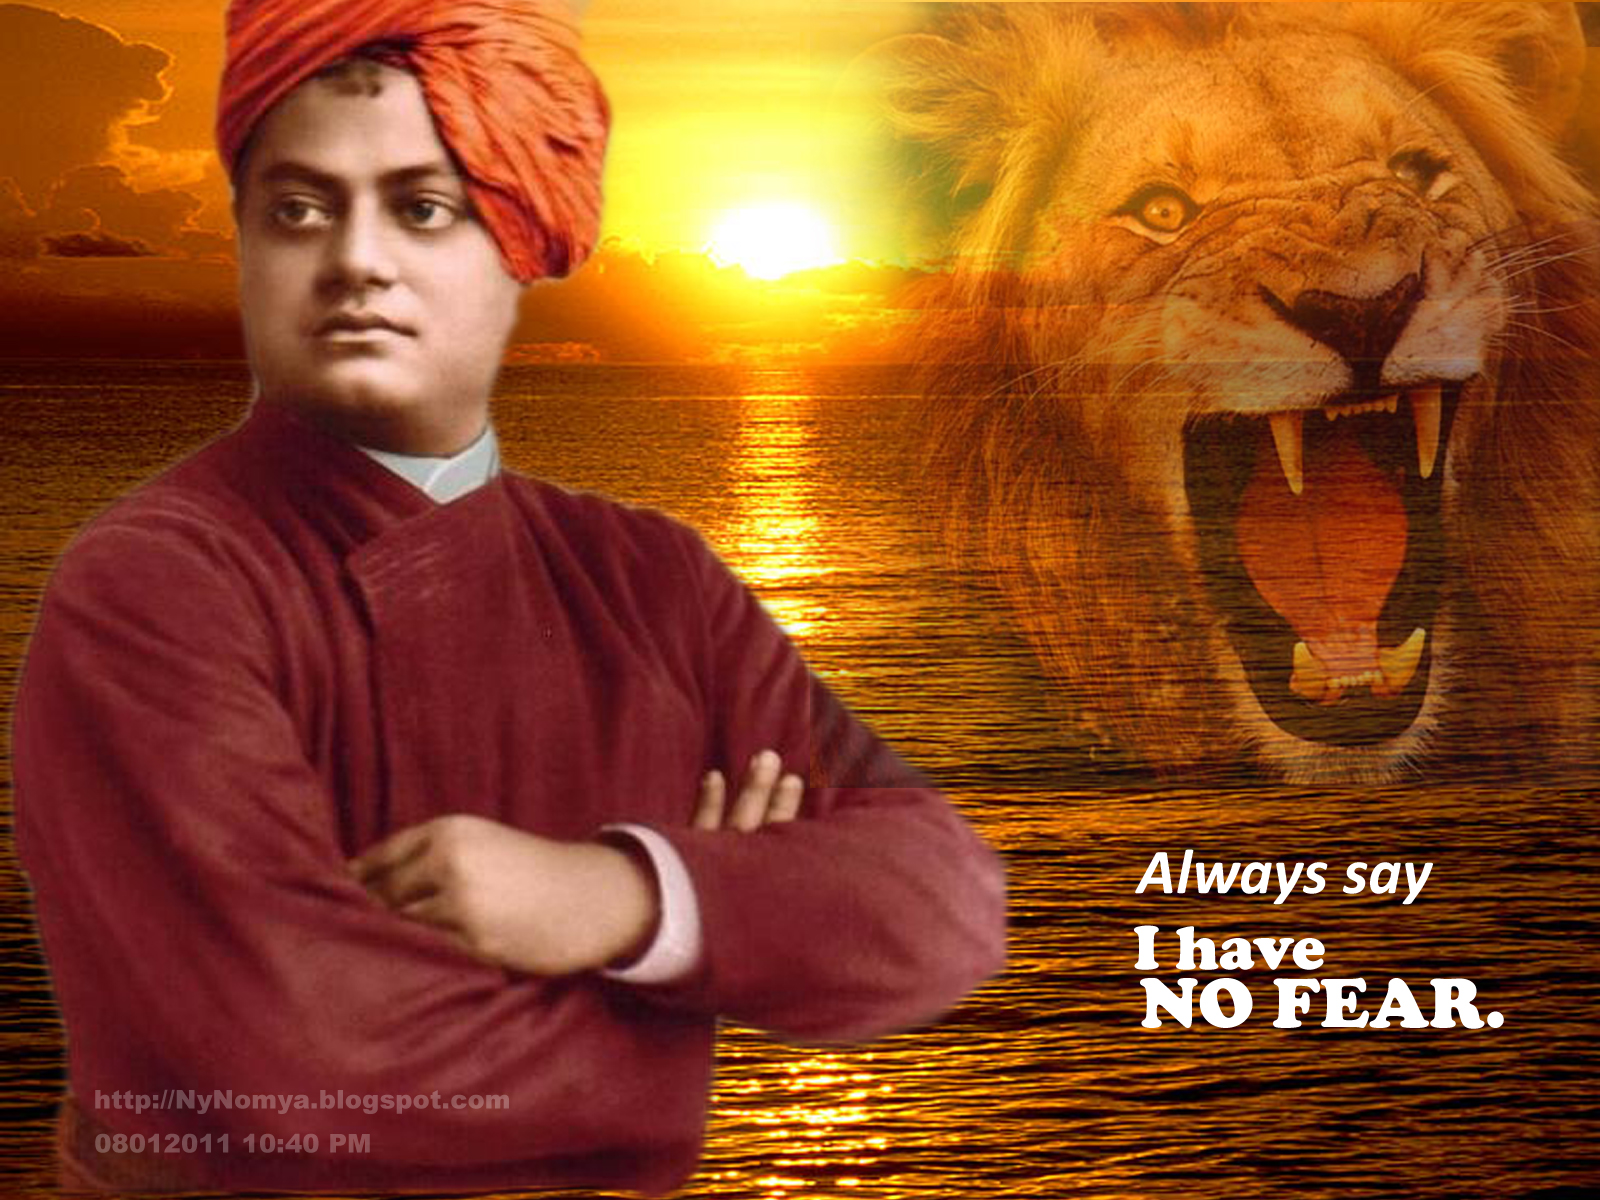 SWAMI VIVEKANAND WALLPAPER LORD 1600x1200